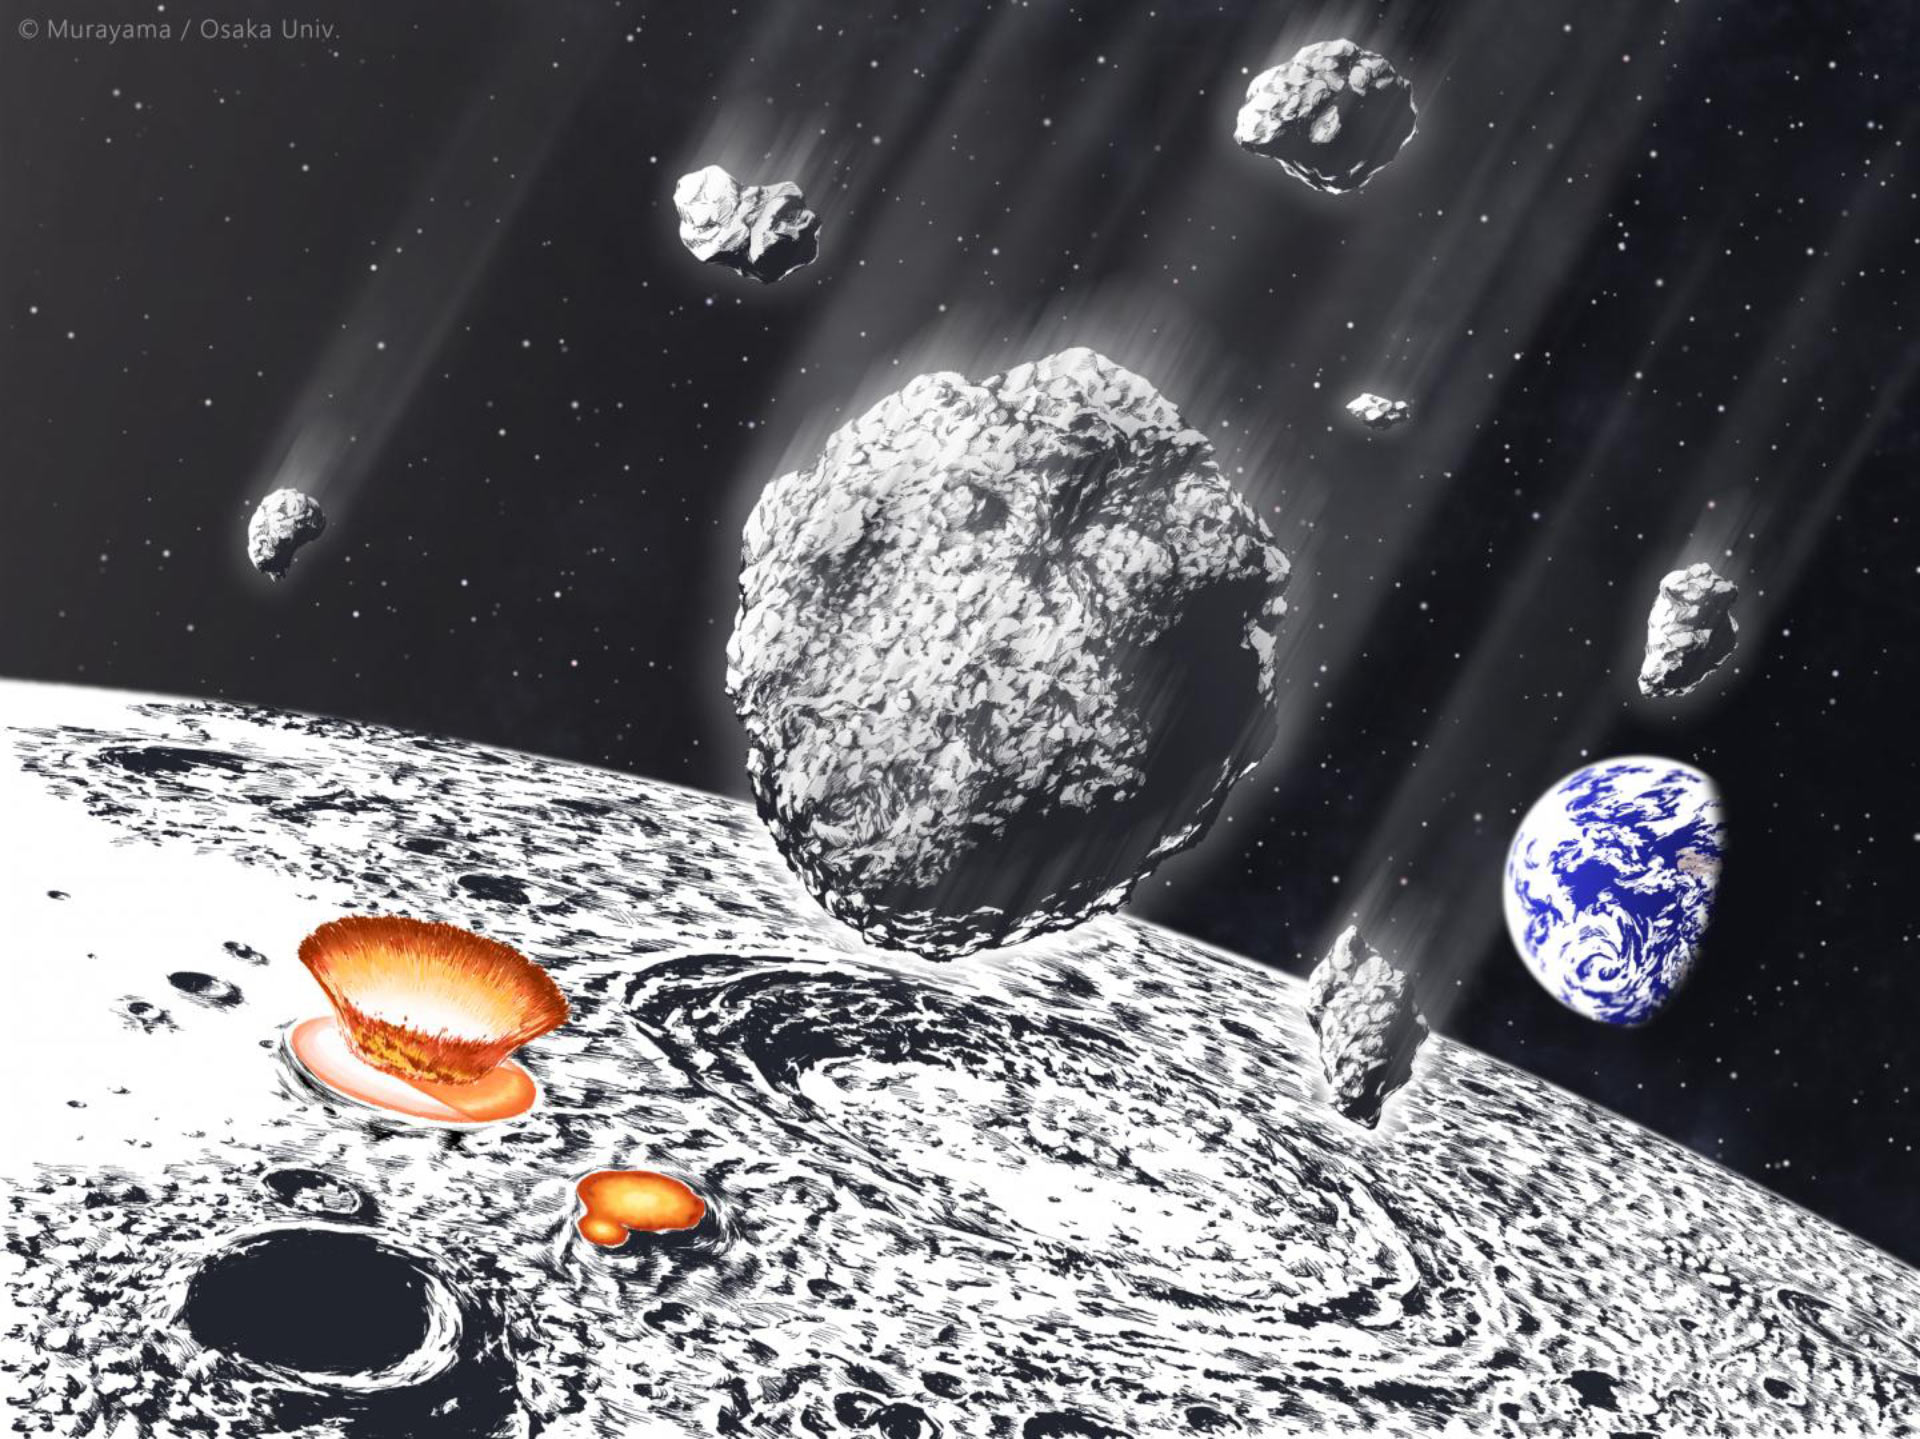 Moon May Have Fragments Of Ancient Venus On Its Surface Planetary Science Space Exploration Sci News Com